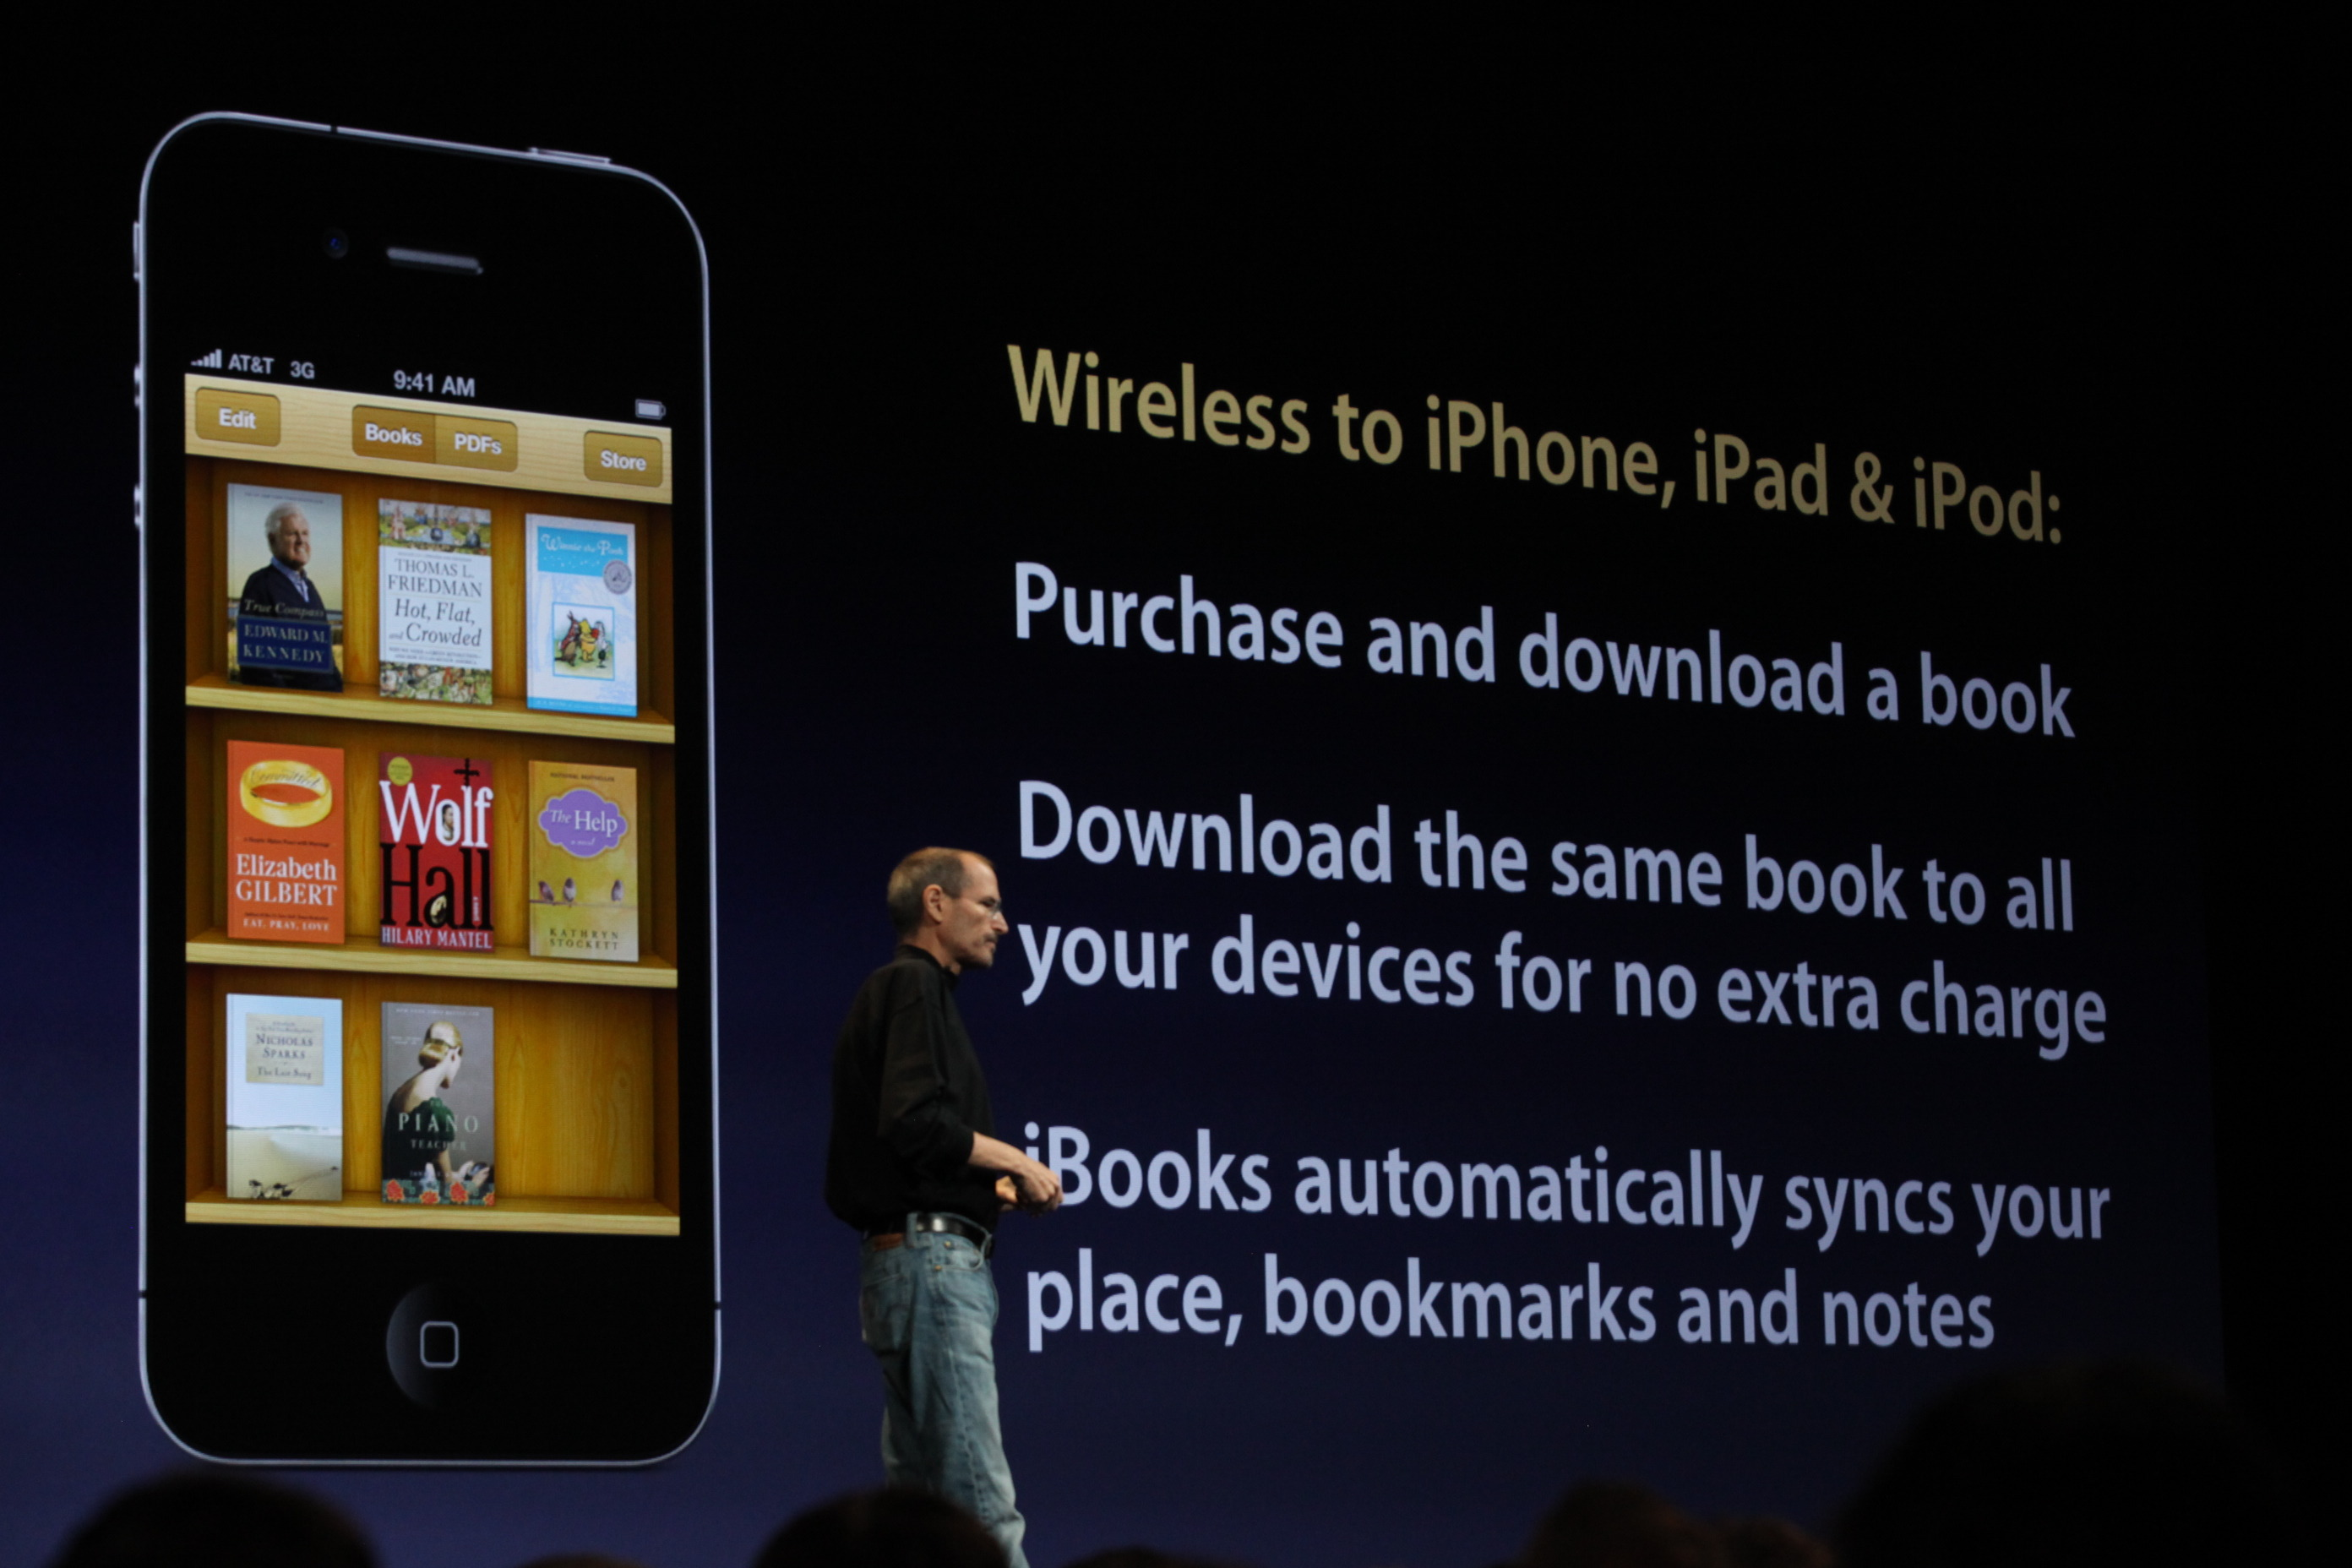 iBooks on the iPhone 4